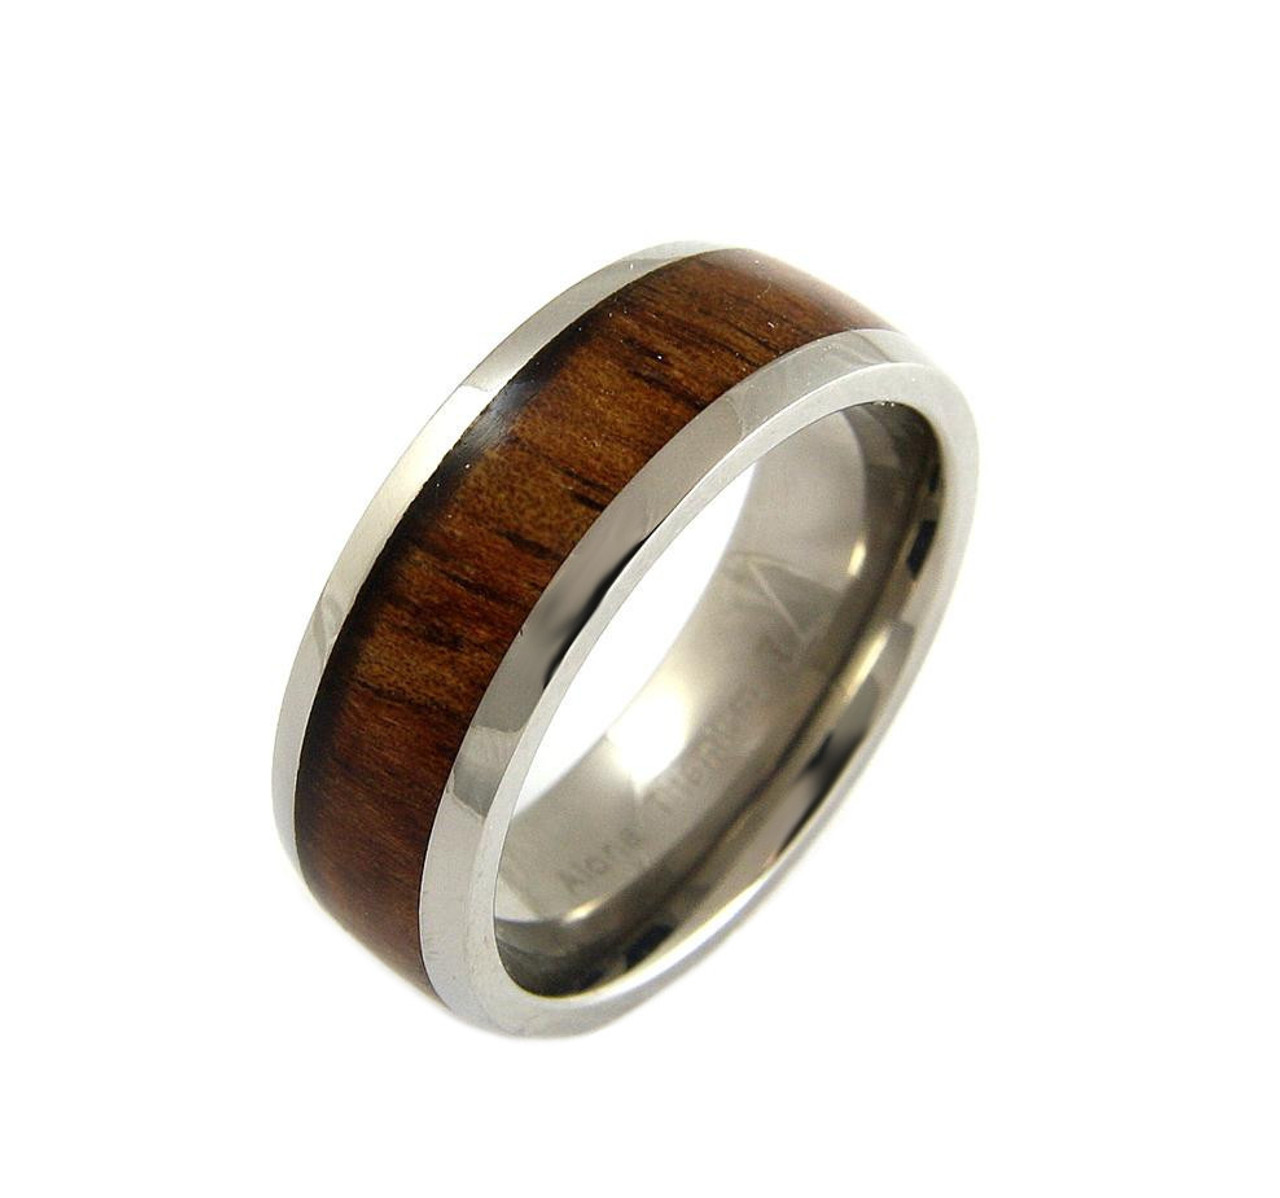 Men's Titanium Wedding Band With Hawaiian Koa Wood Inlay: Wooden Inlay Wedding Band At Websimilar.org